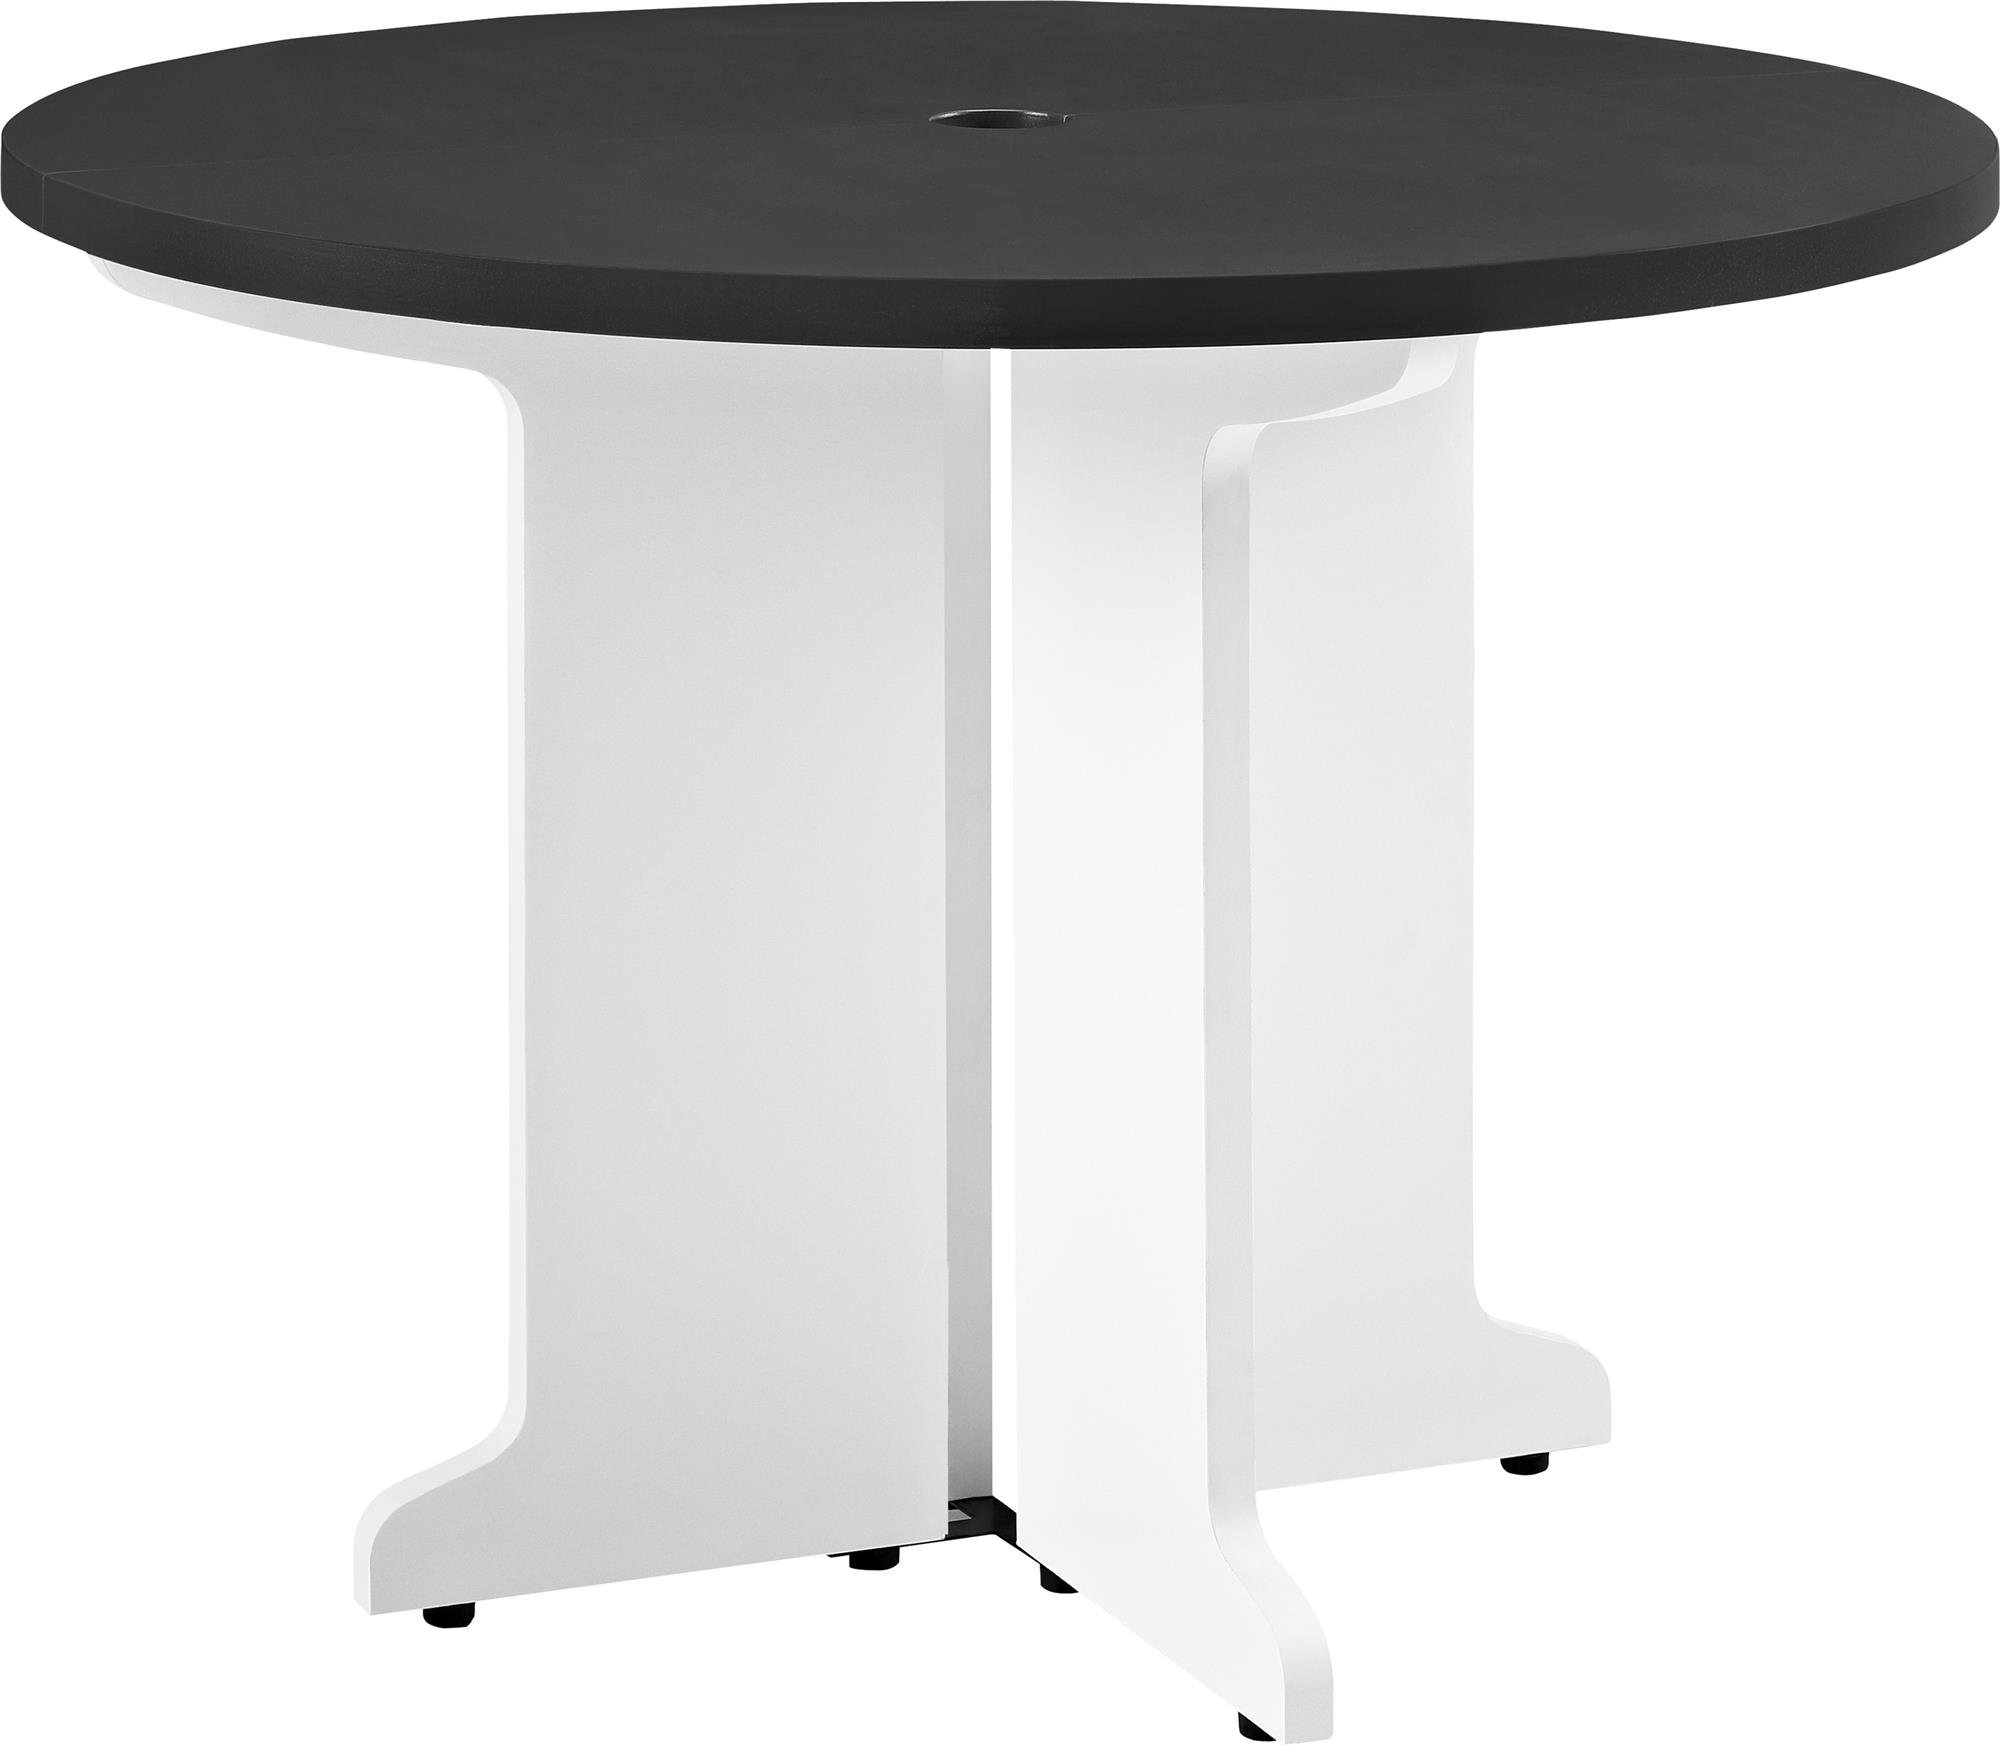 Ameriwood Home Pursuit Round Table, Gray by Altra Furniture